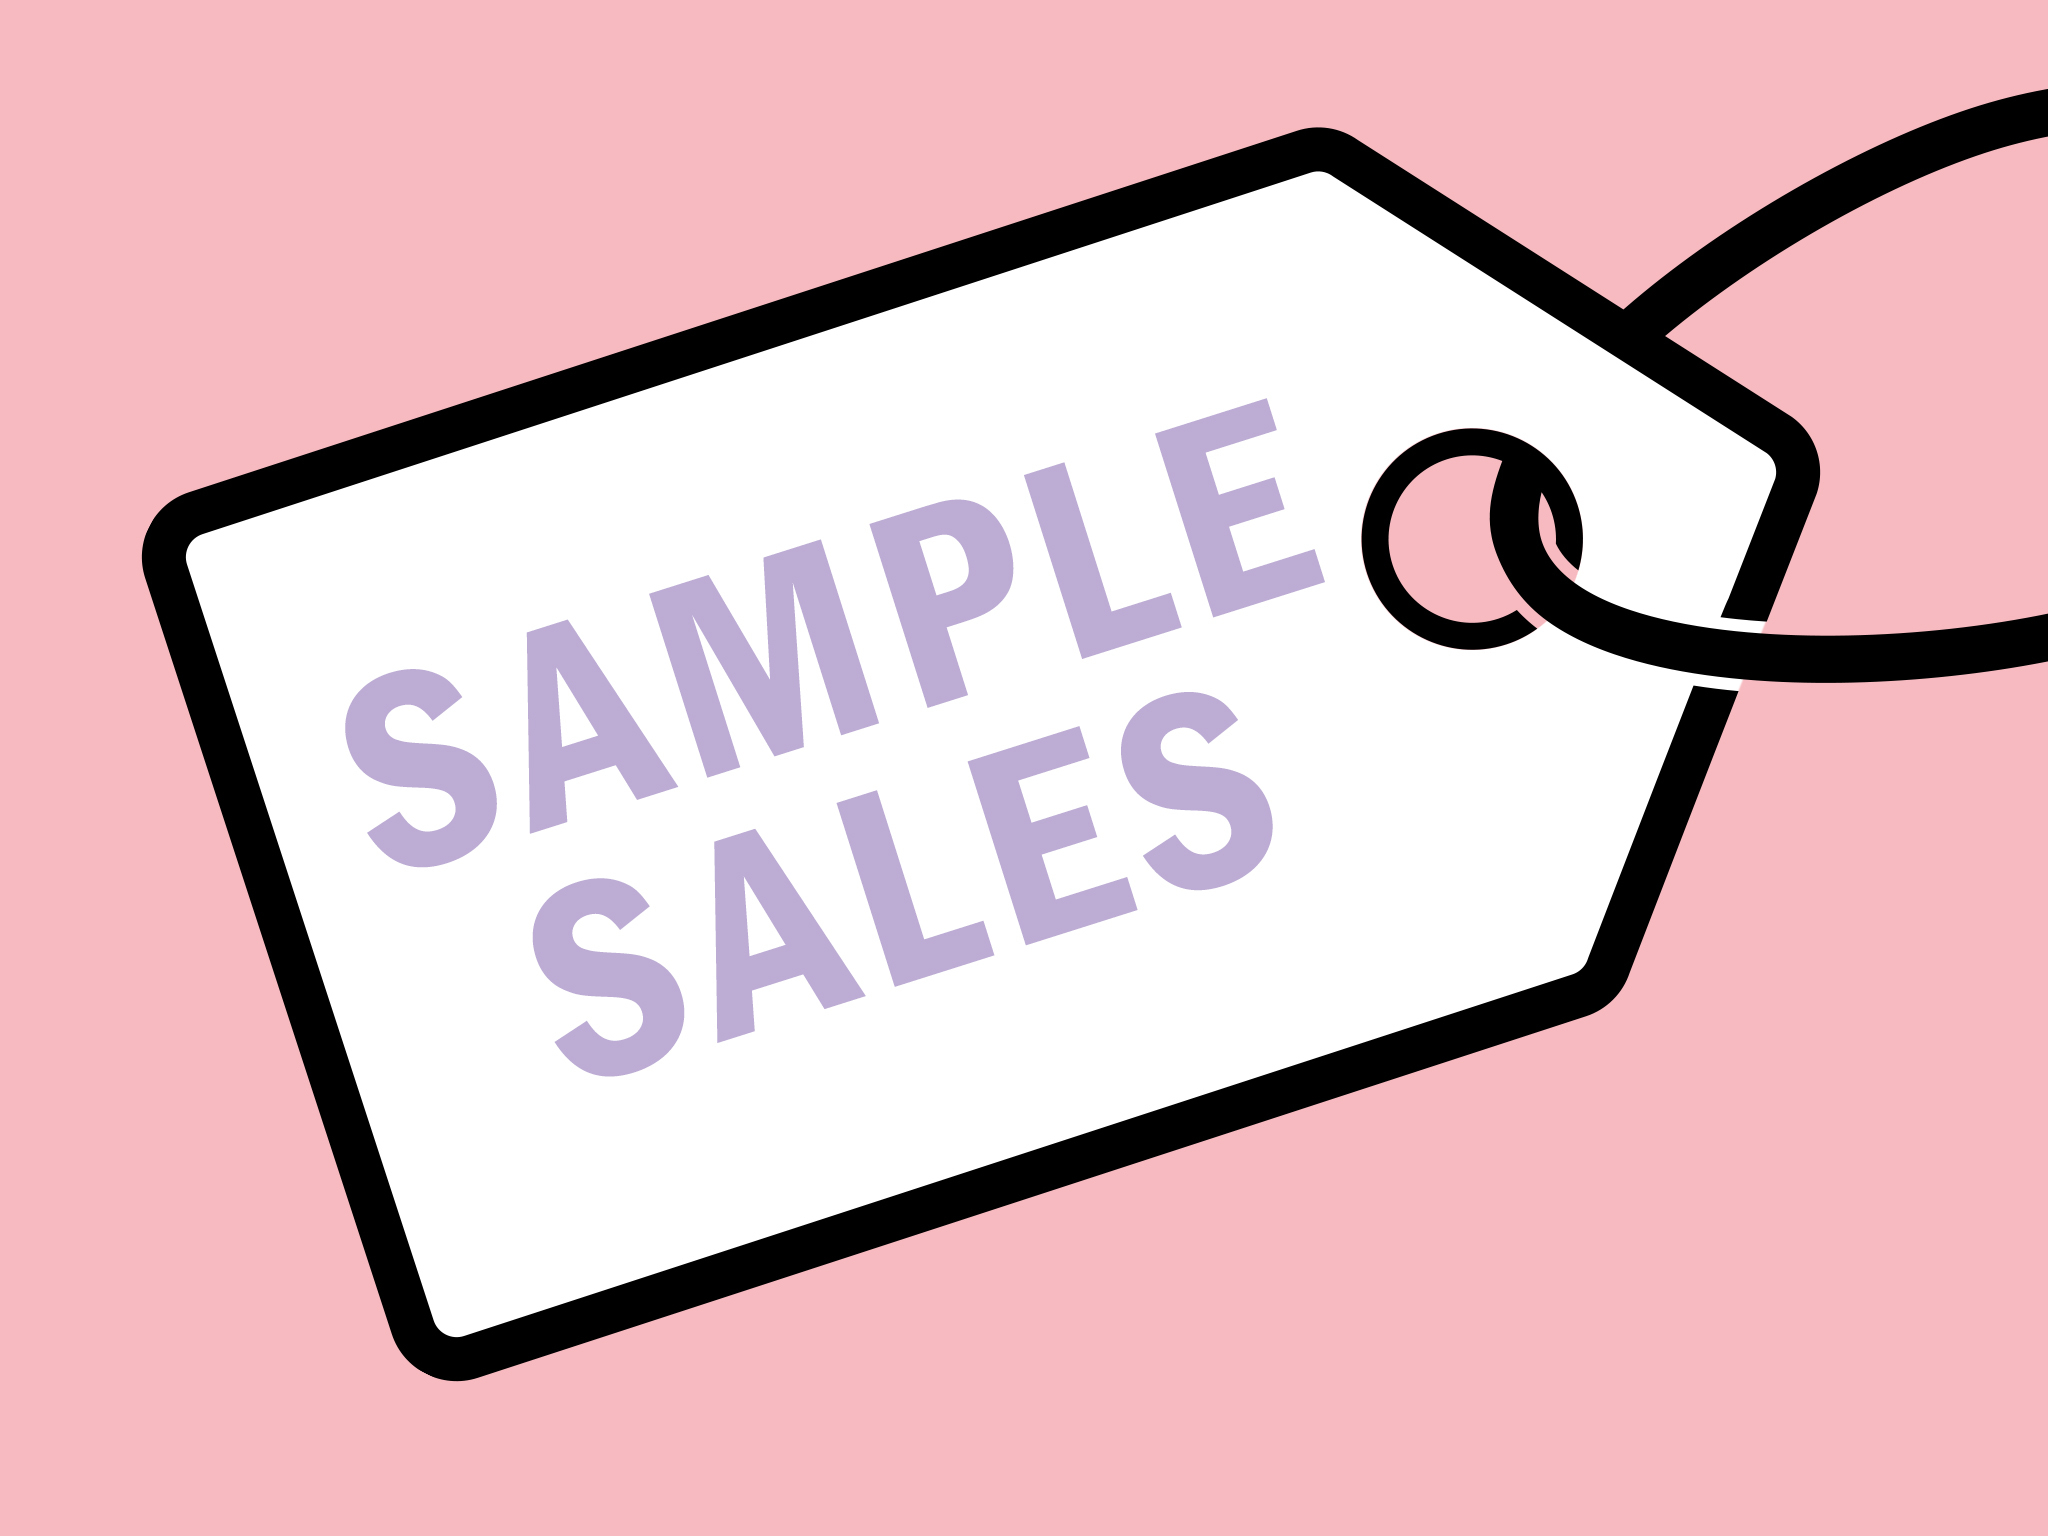 Sample sales in London